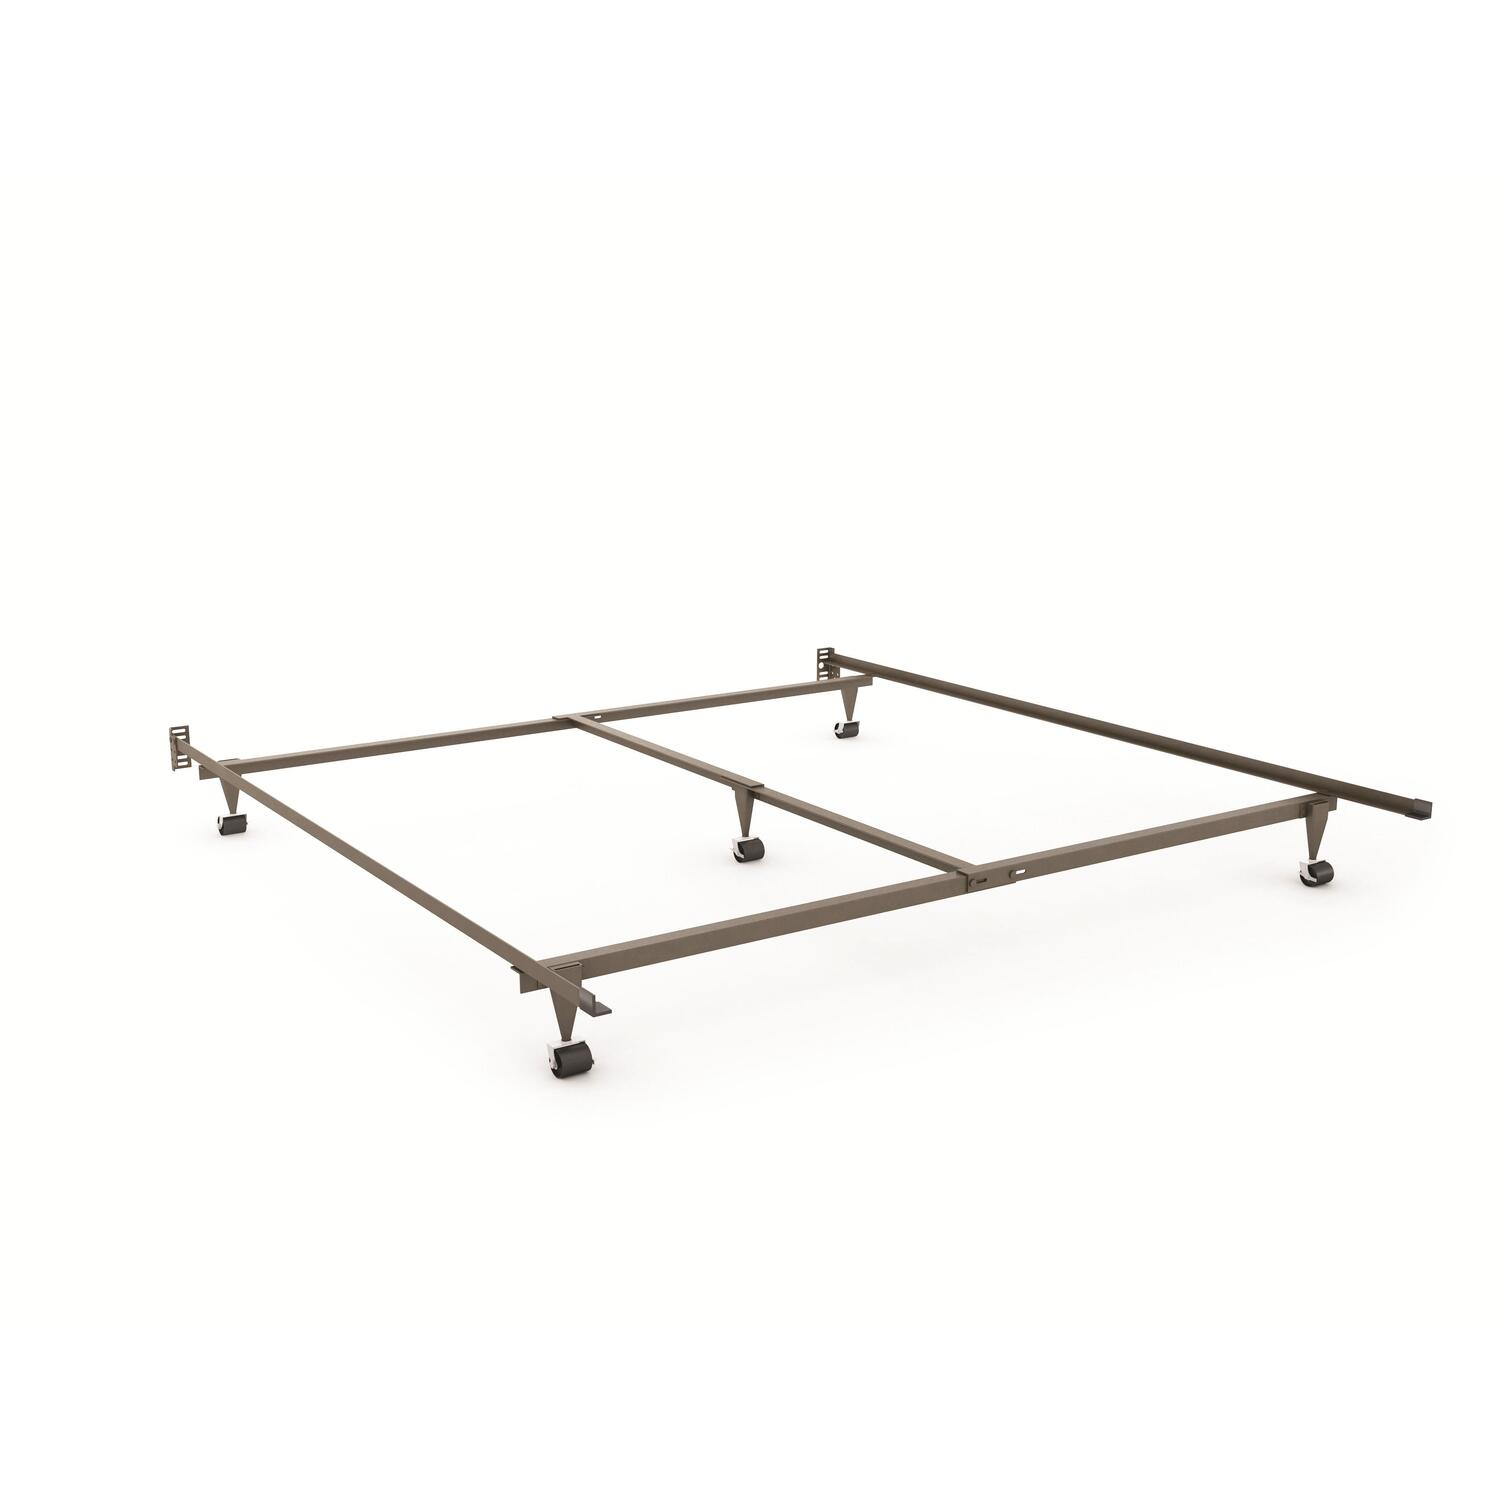 King Size Steel Bed Rails With Head Board Attachment